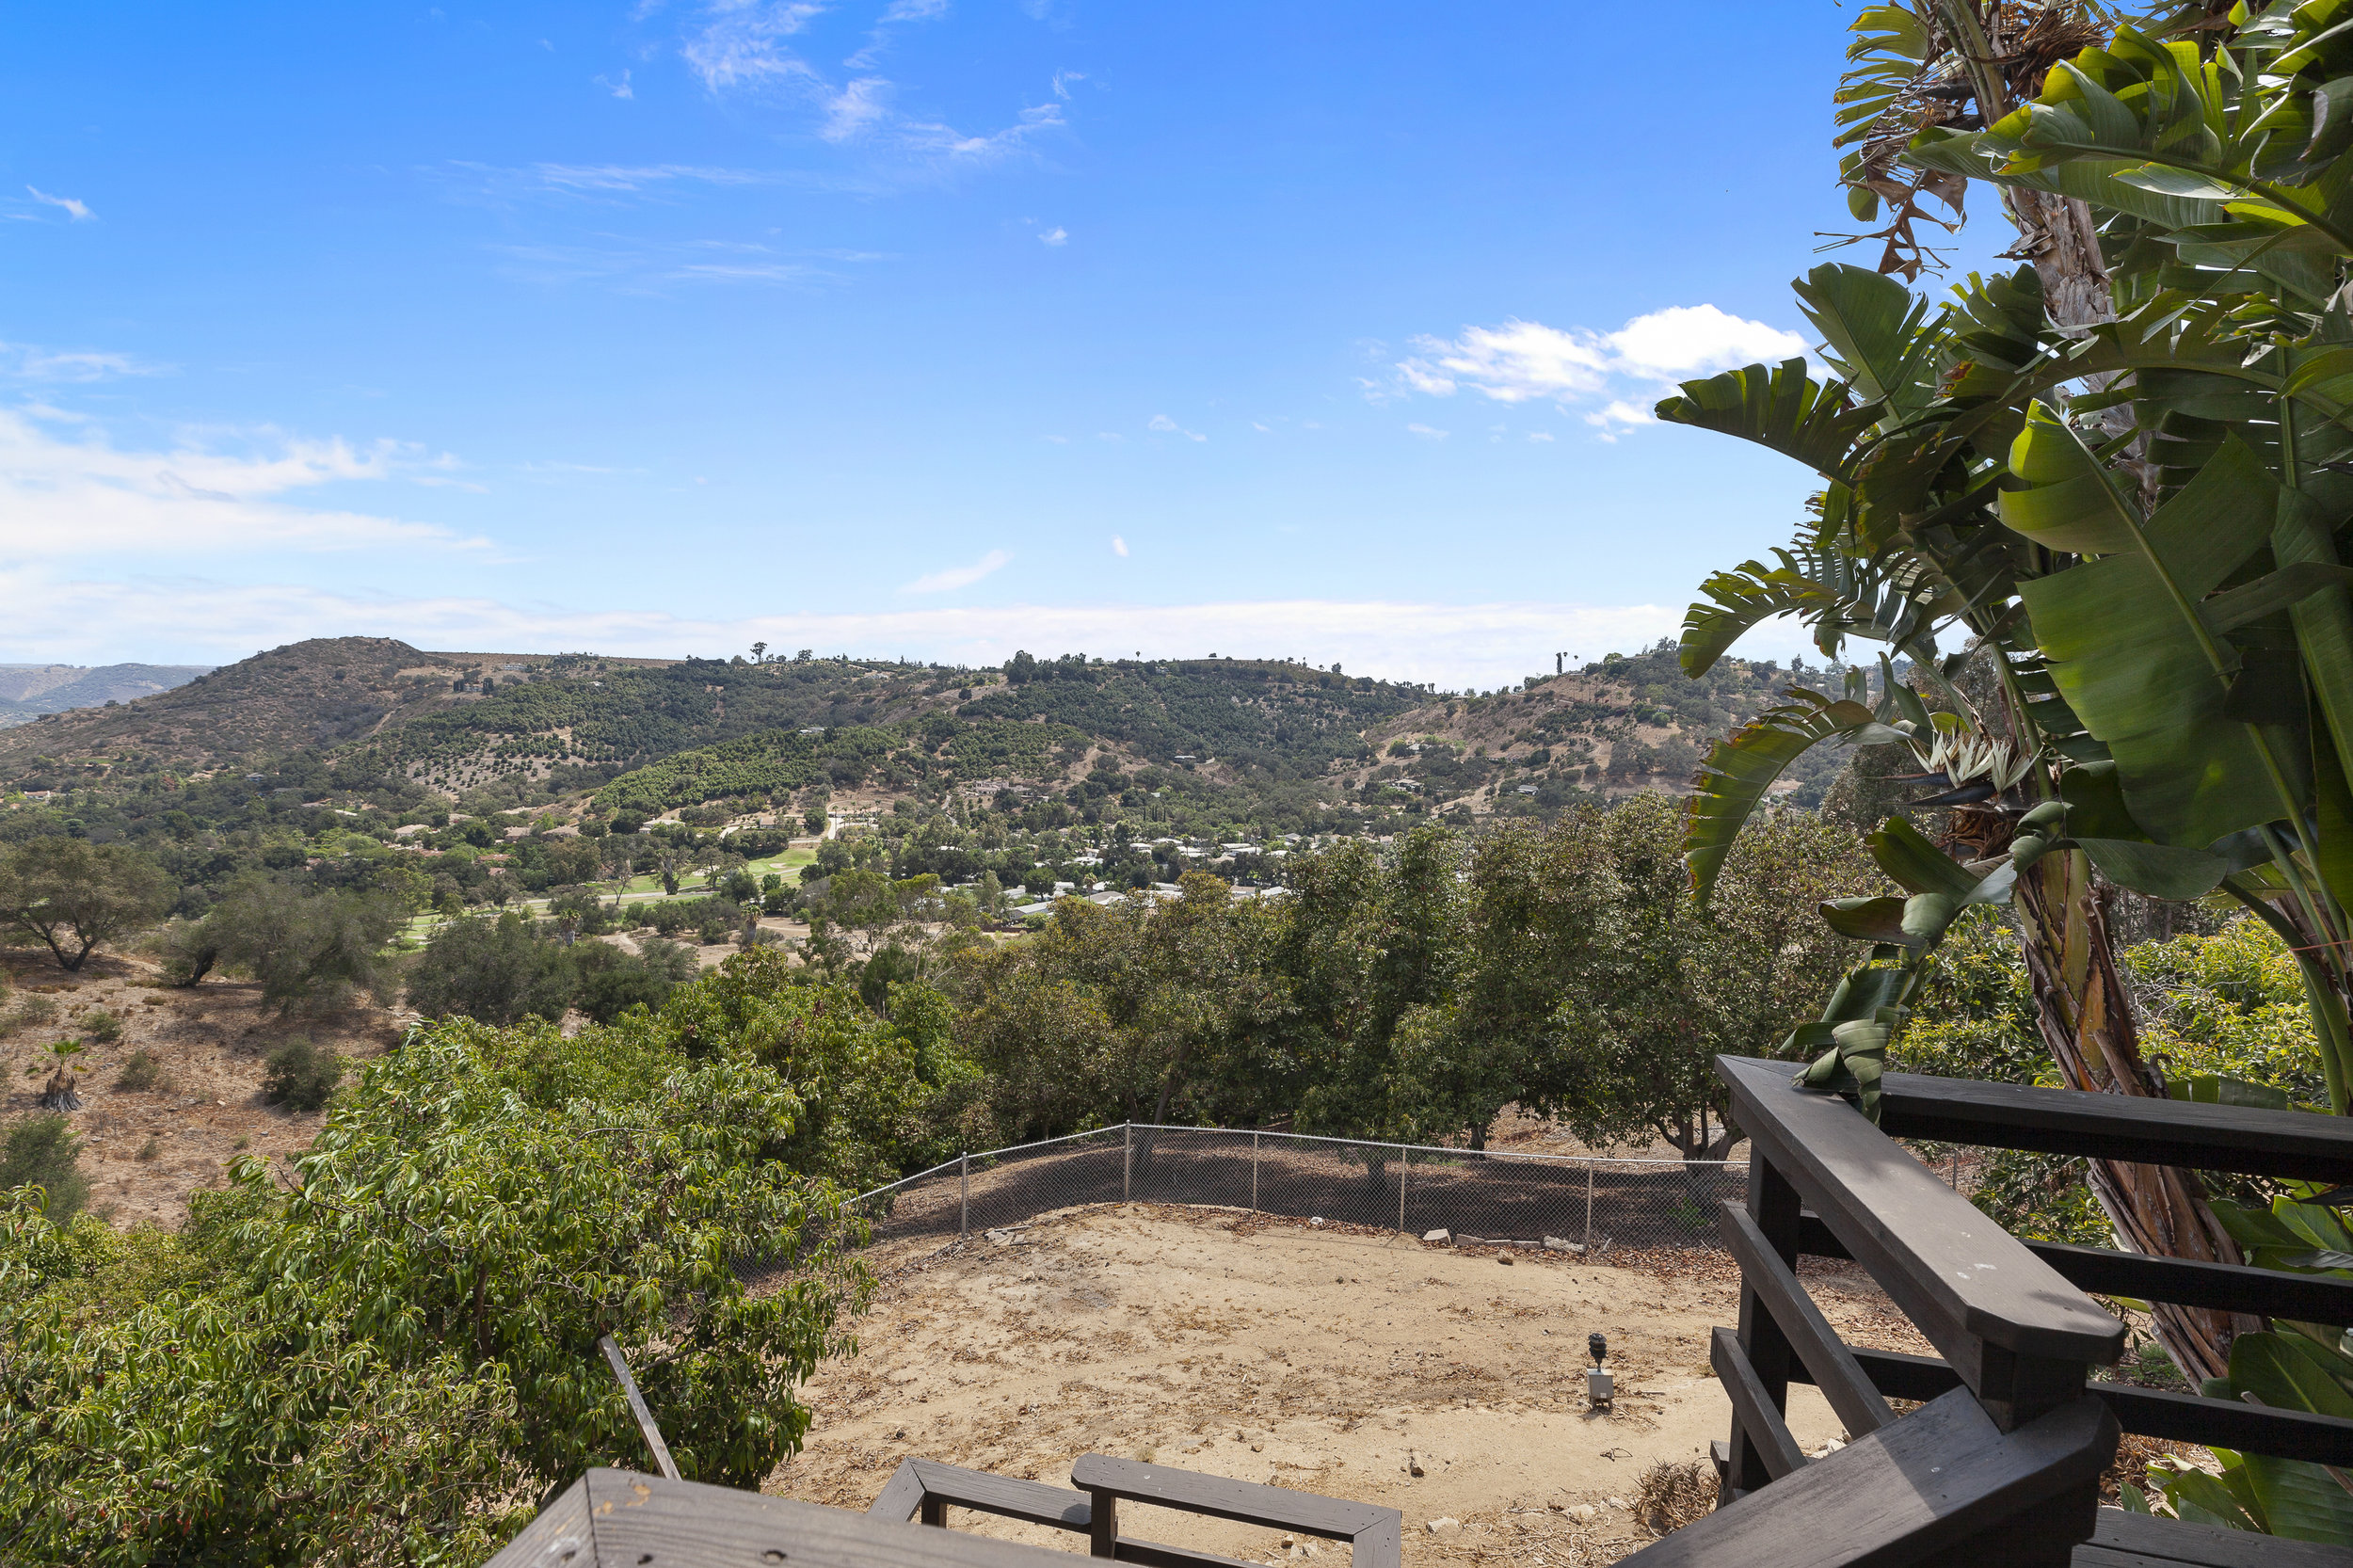 012_View From Deck.jpg